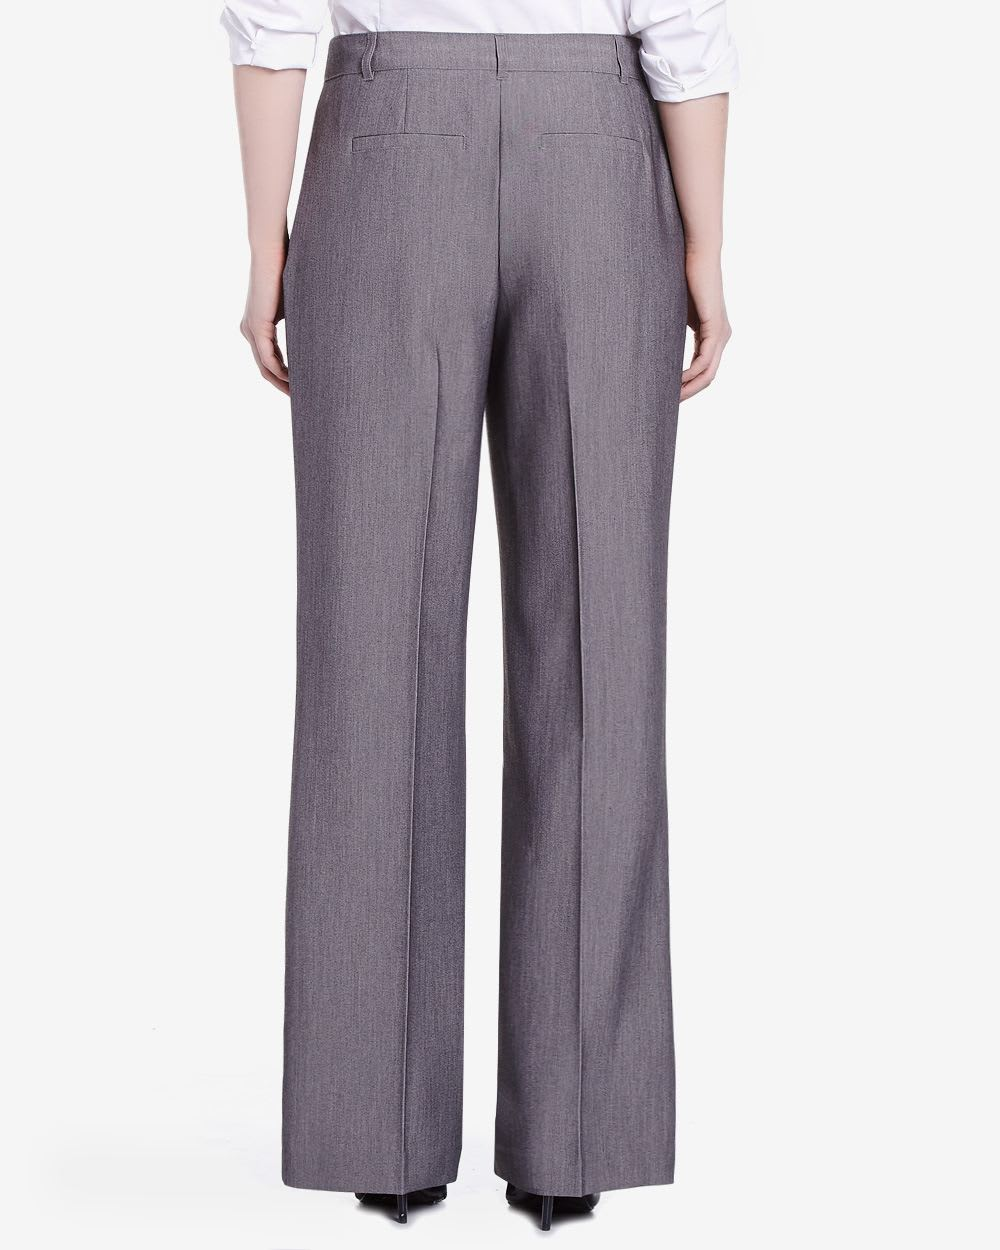 Shop women's trousers & wide leg pants at chaplin-favor.tk Discover a stylish selection of the latest brand name and designer fashions all at a great value.